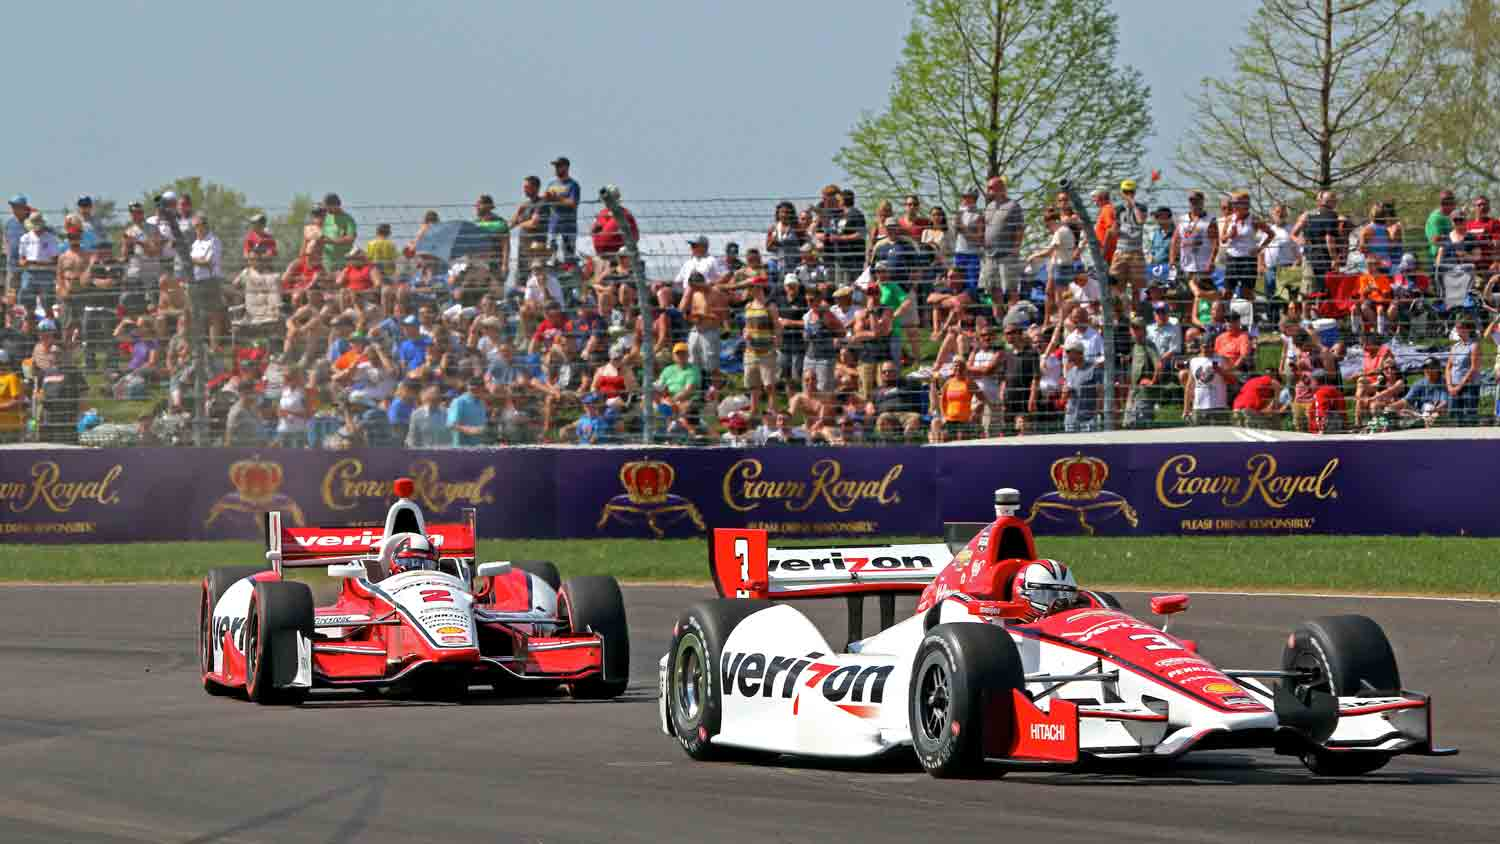 Grand prix of indianapolis 5